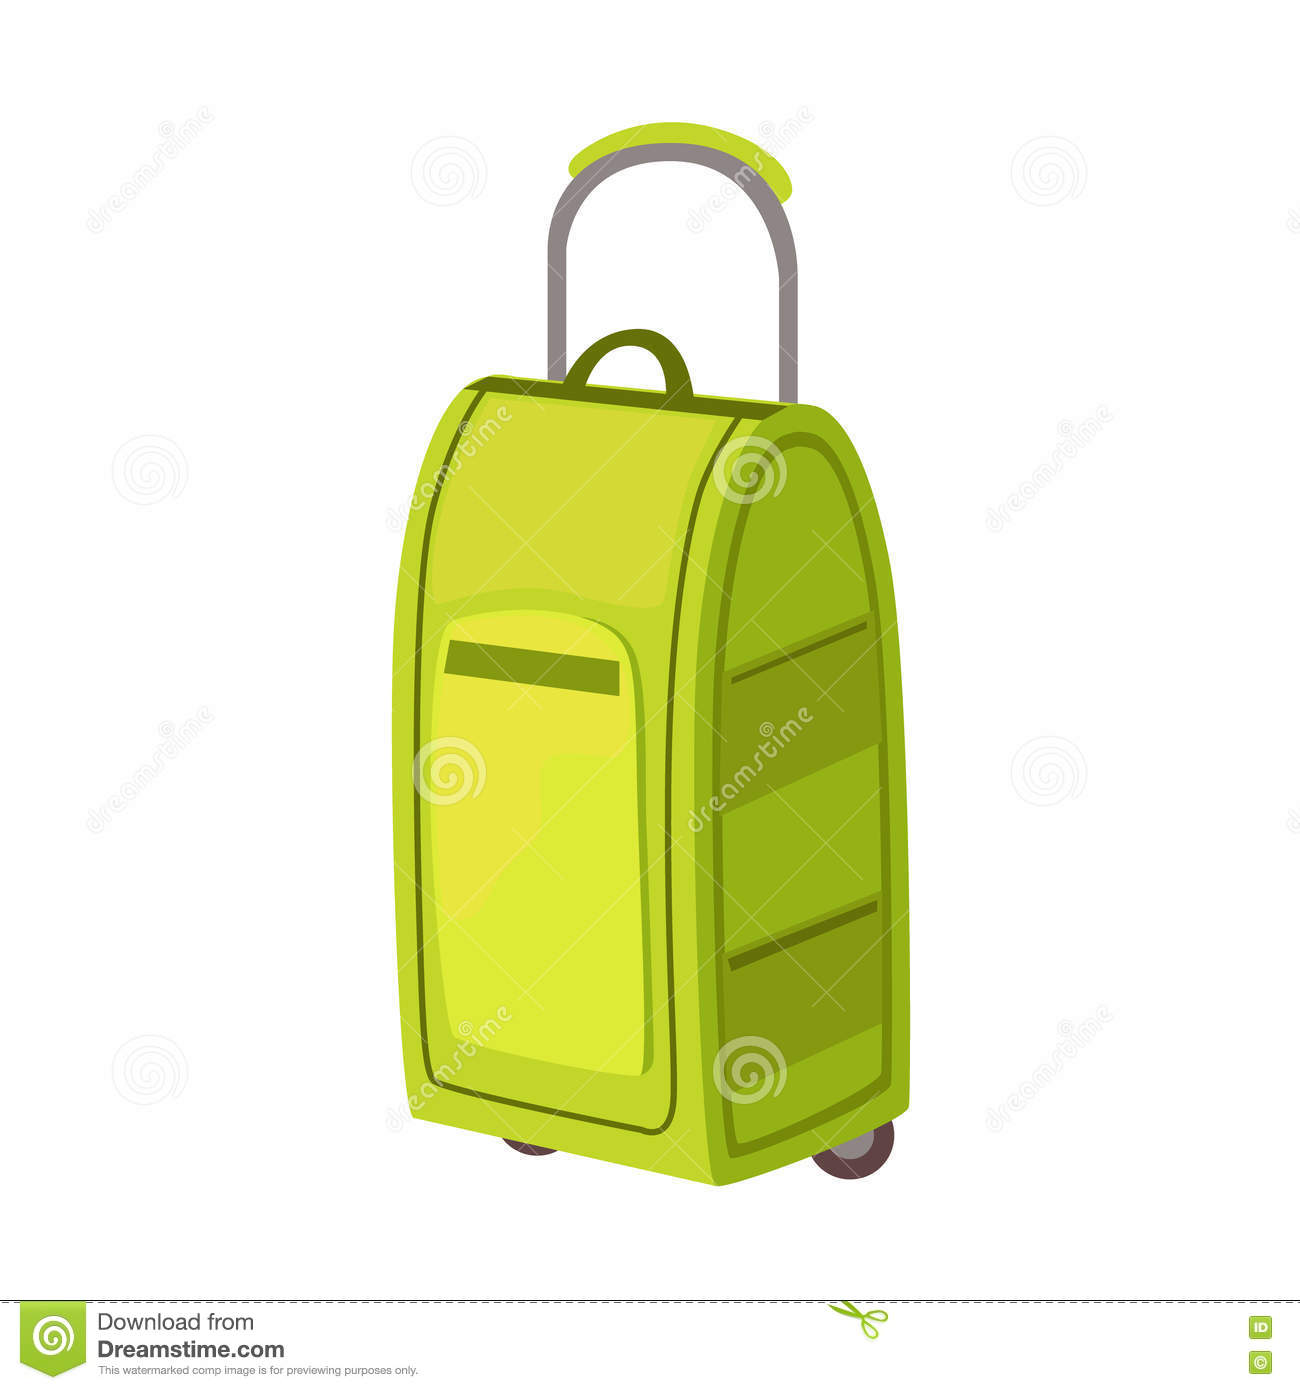 a7457cd3c6d9 Large Green Suitcase On Wheels With Telescopic Handle Item From ...